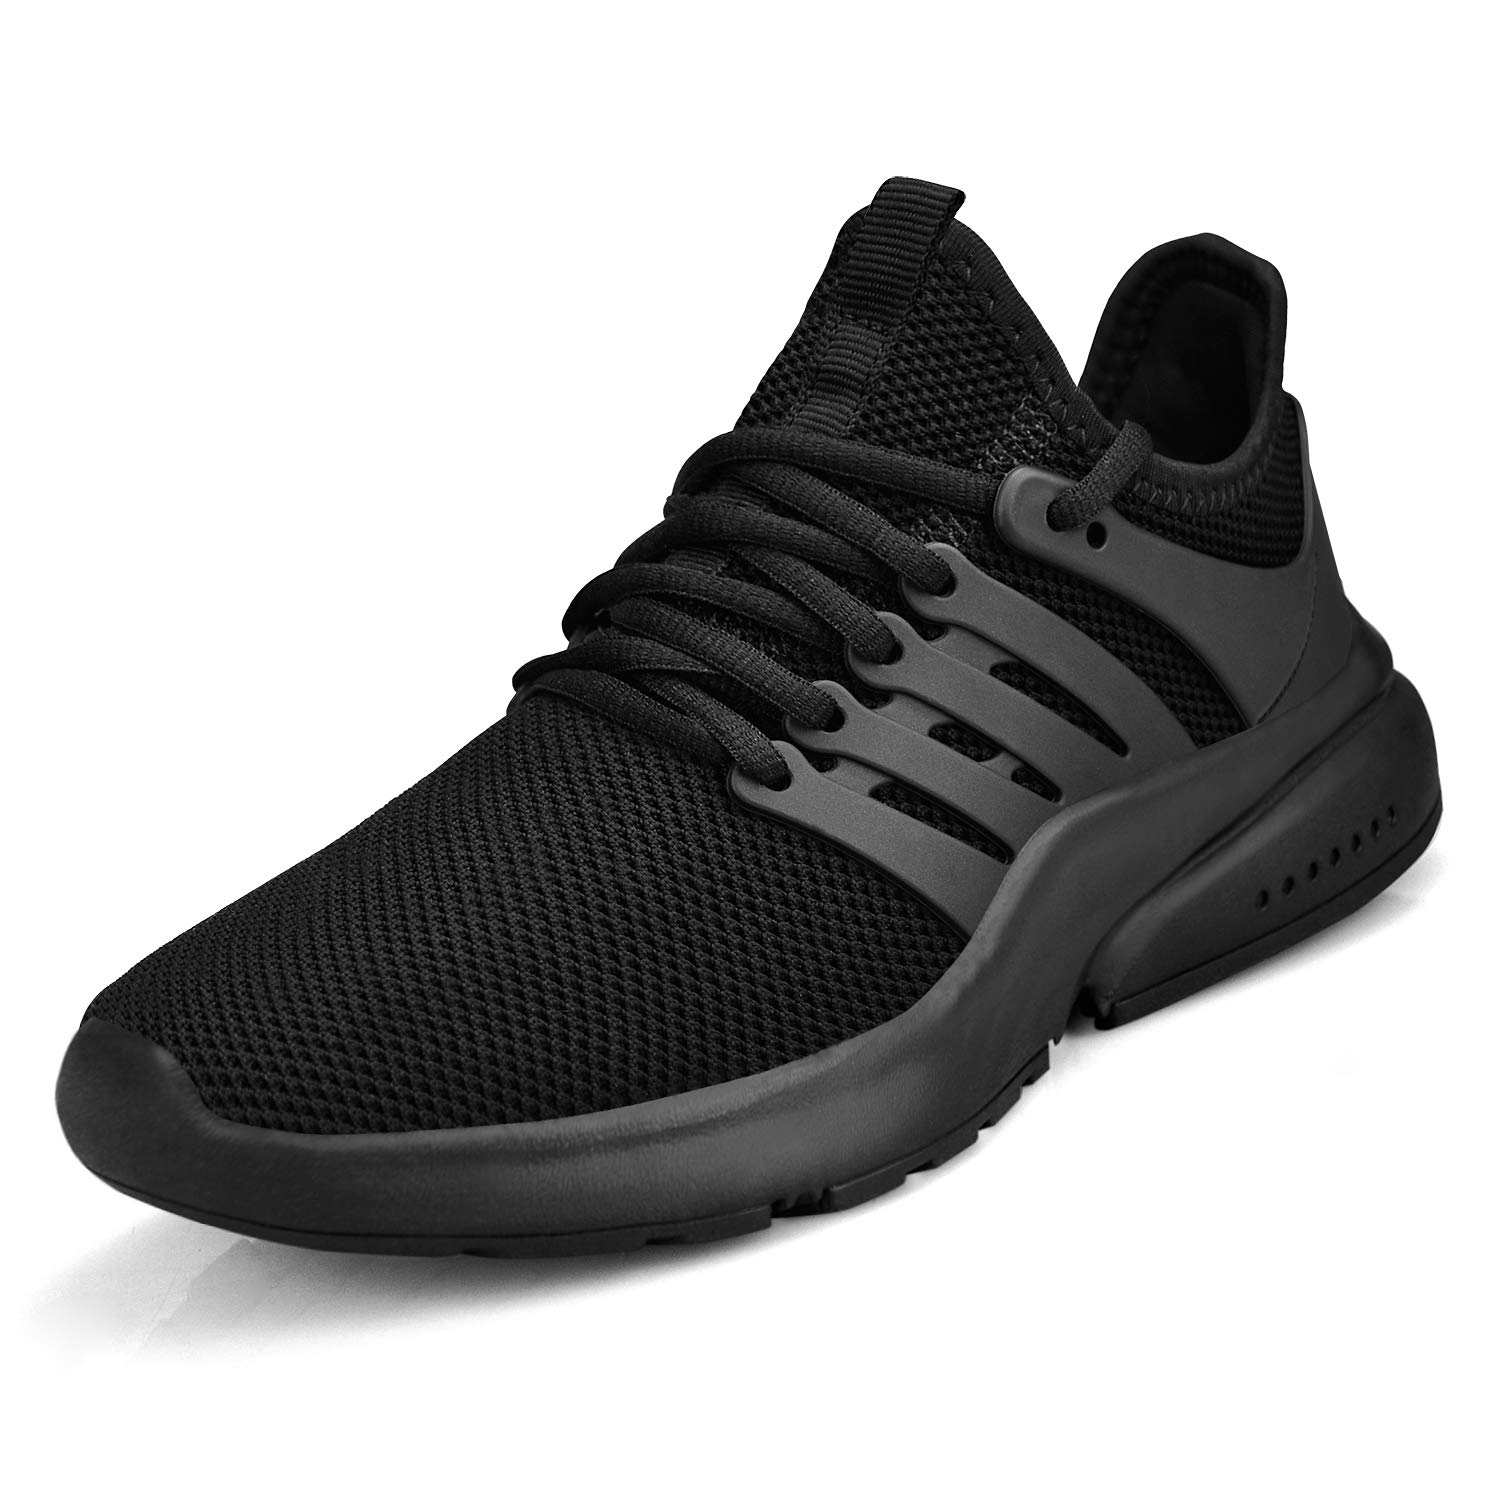 Feetmat Women's Running Shoes Lightweight Non Slip Breathable Mesh Sneakers Sports Athletic Walking Work Shoes Black 9 M by Feetmat